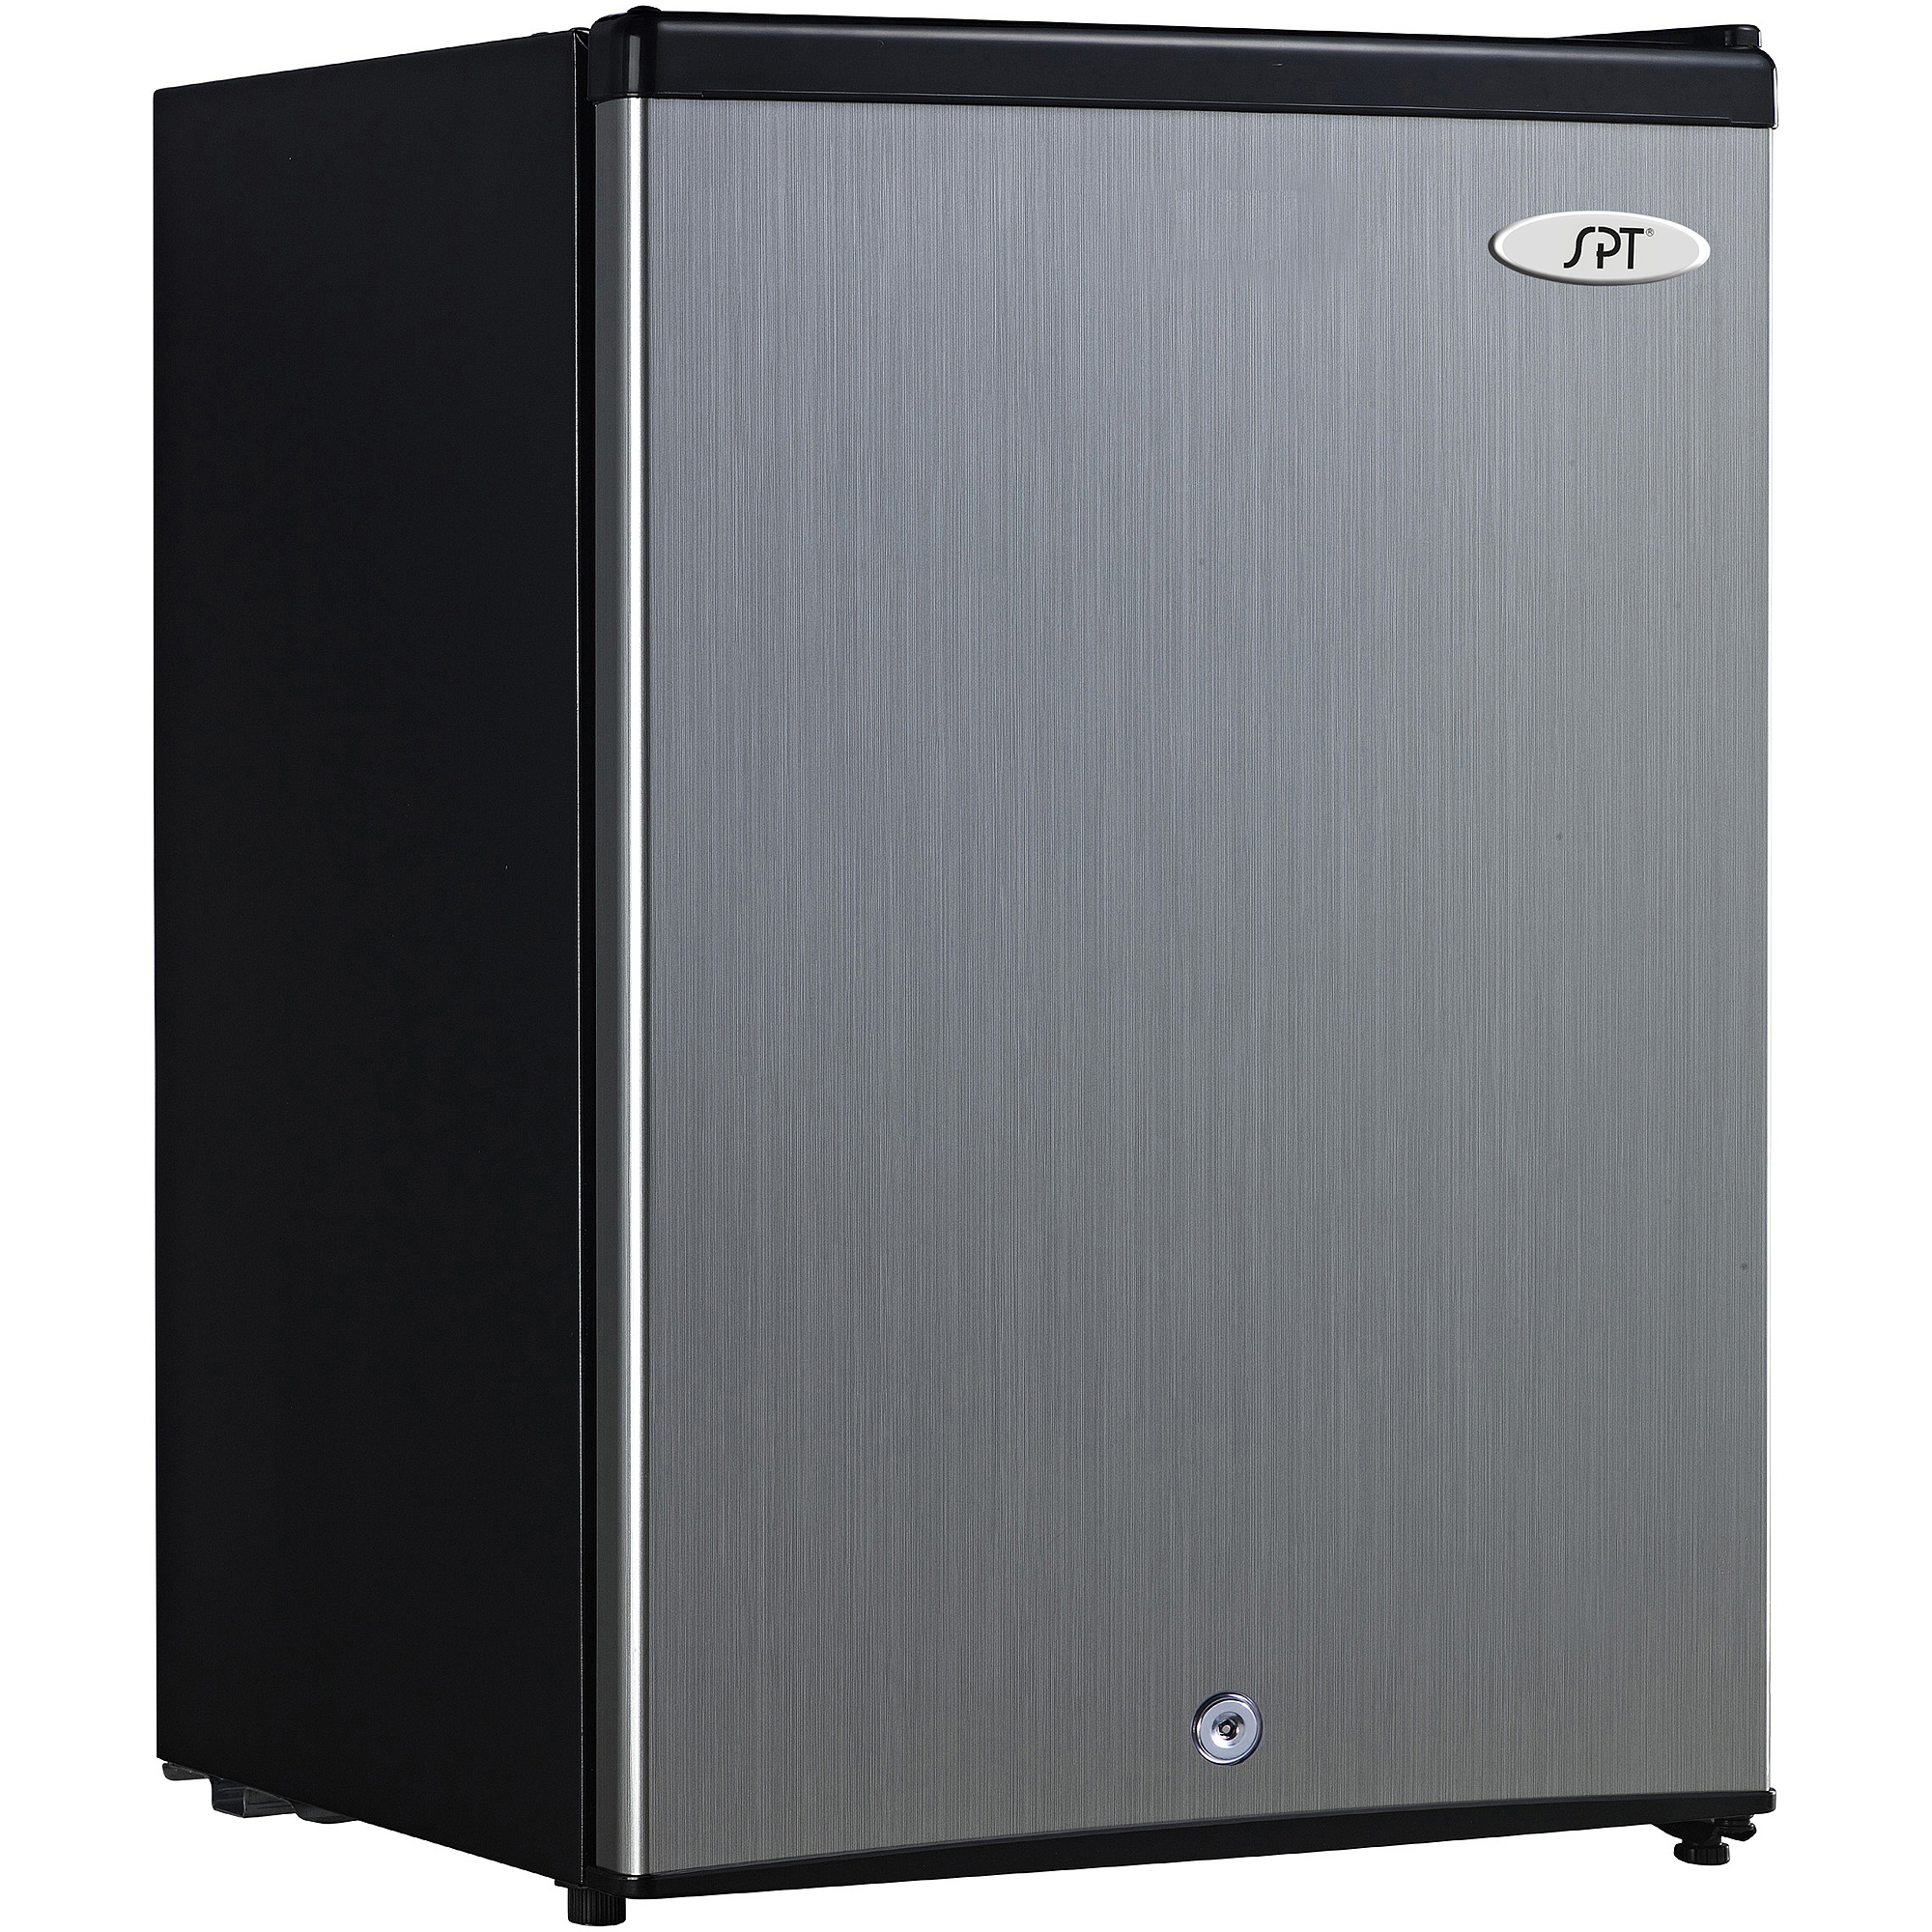 Sunpentown 2.1 cu ft Upright Freezer, Stainless Steel